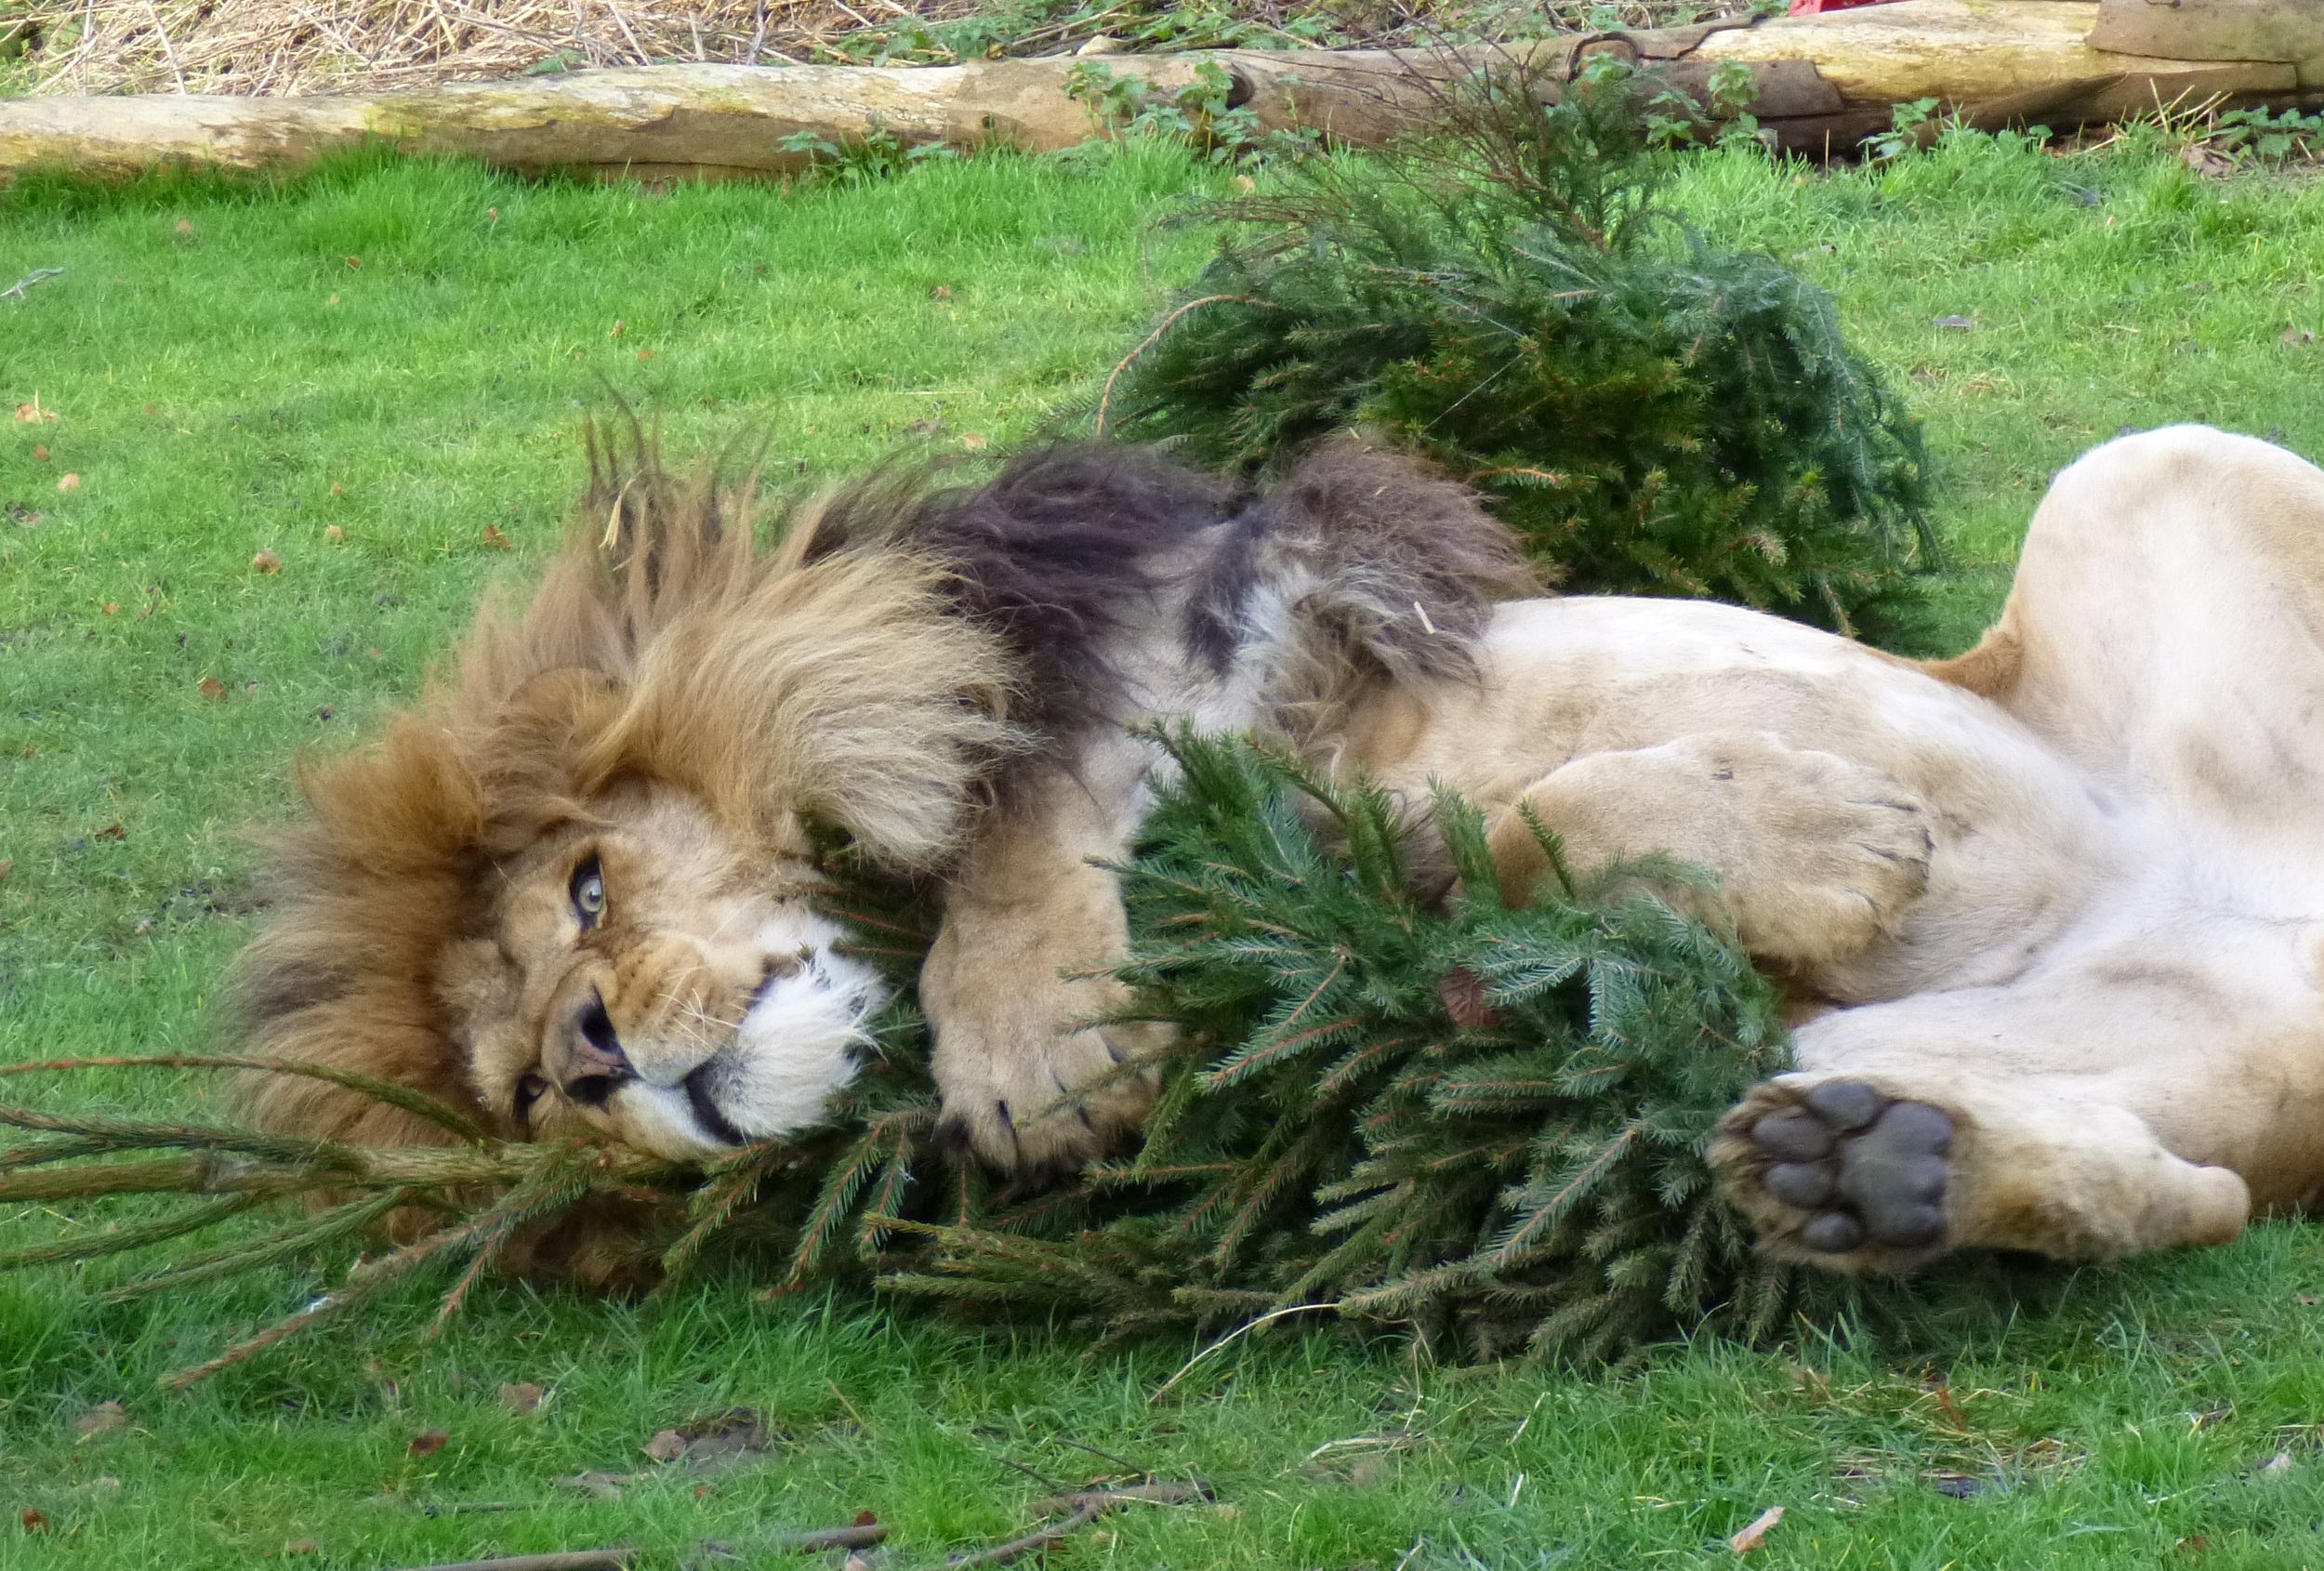 Zoo Gives Lions Old Christmas Trees To Play With As Post